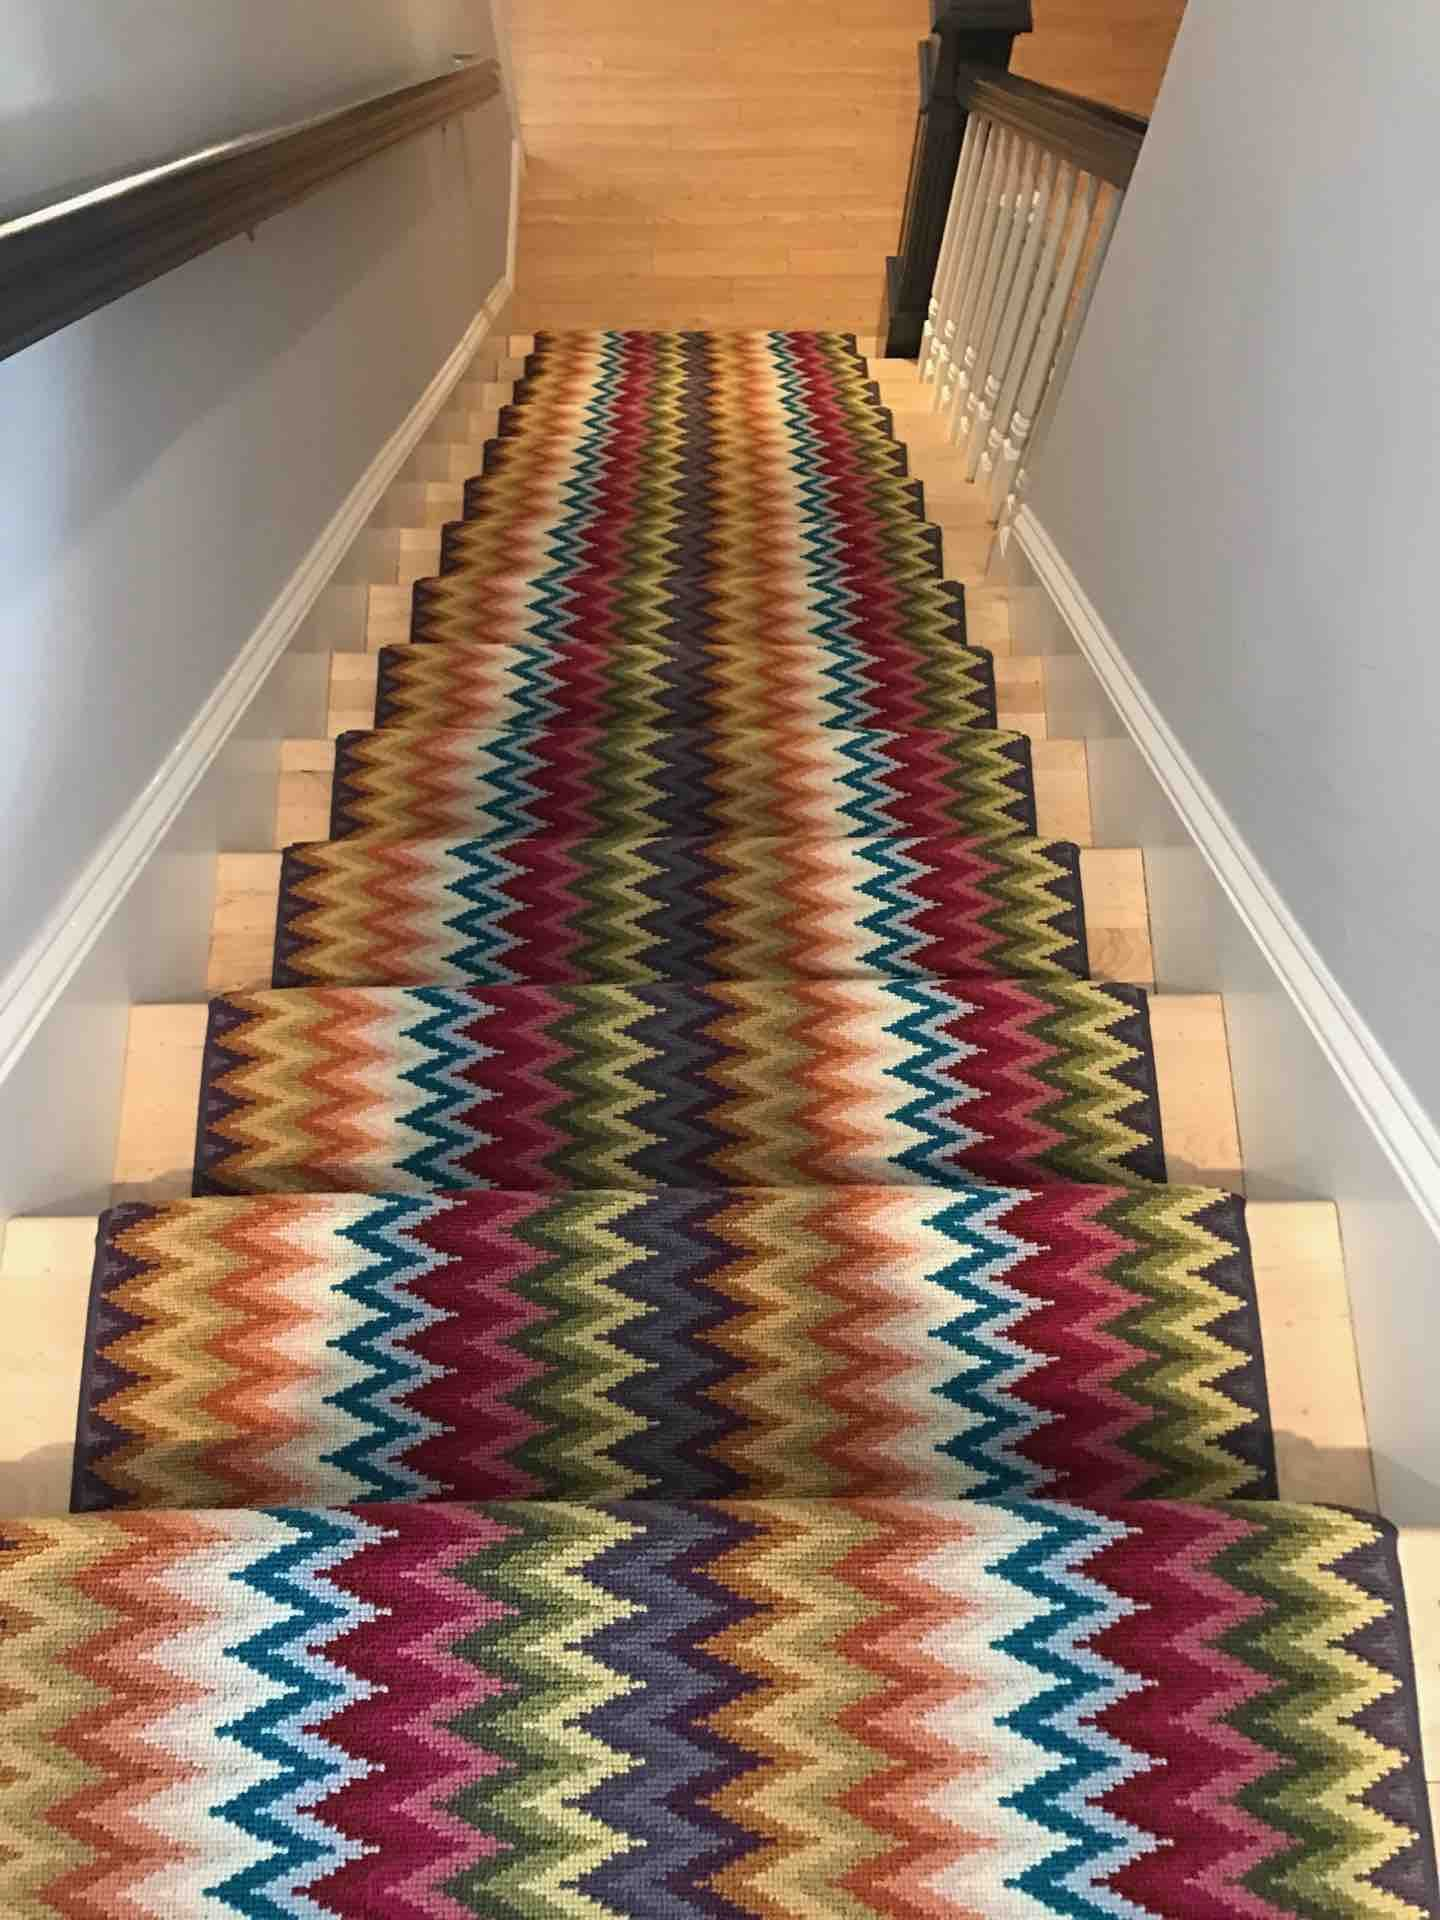 This Colorful Stair Runner And Its Zig Zag Pattern Bring An